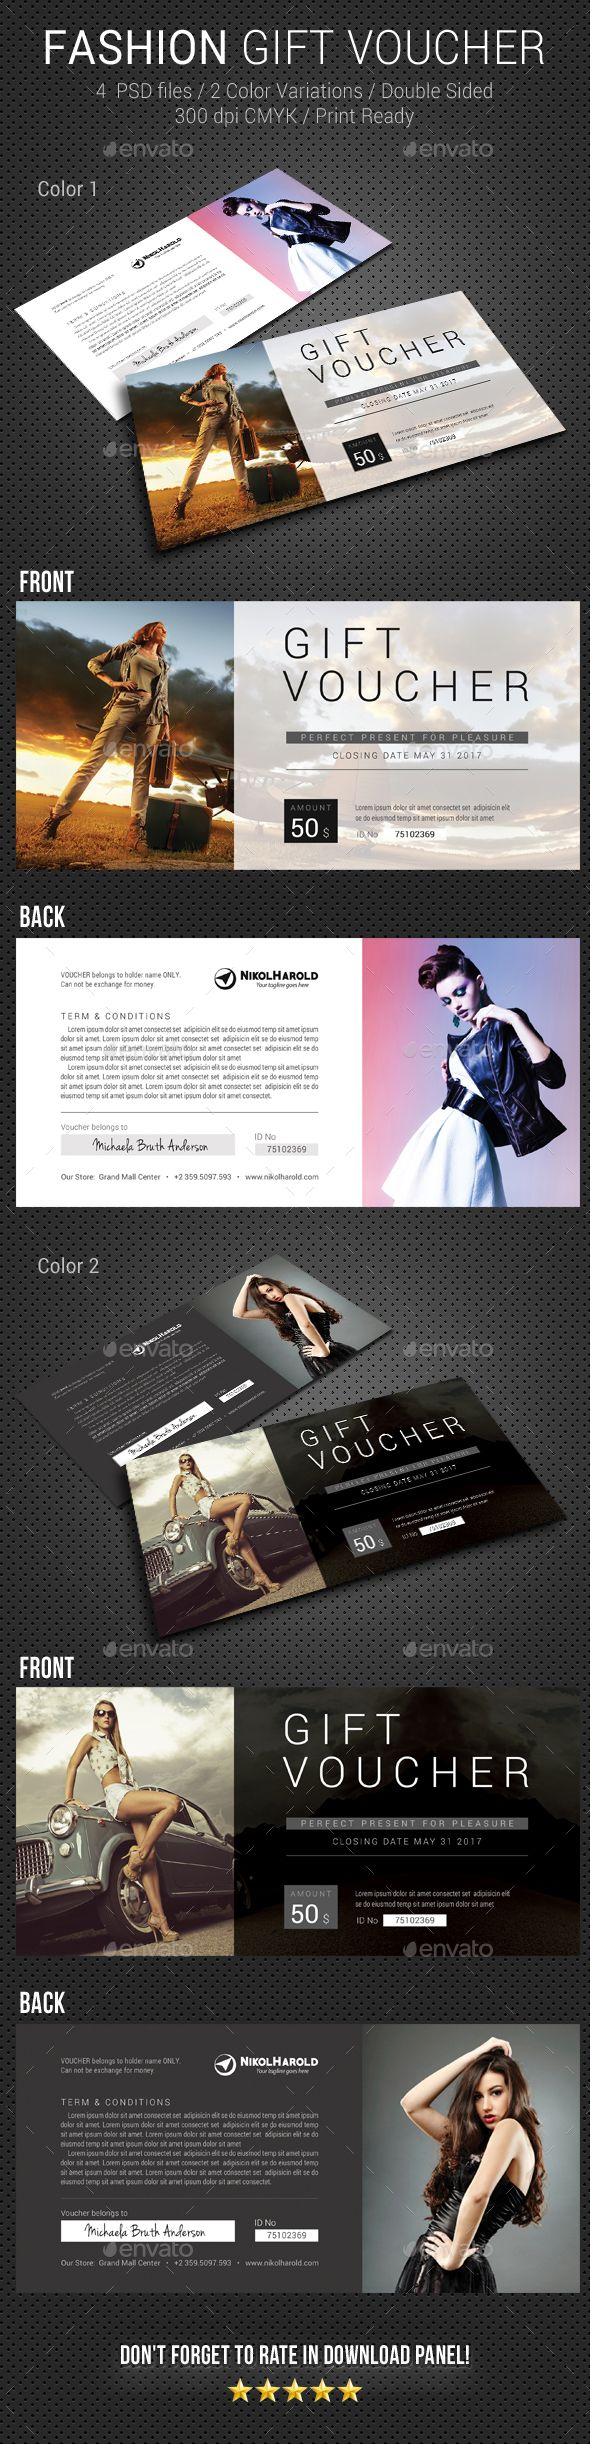 Fashion #Gift Voucher - Loyalty #Cards Cards & #Invites Download here: https://graphicriver.net/item/fashion-gift-voucher/19447468?ref=alena994